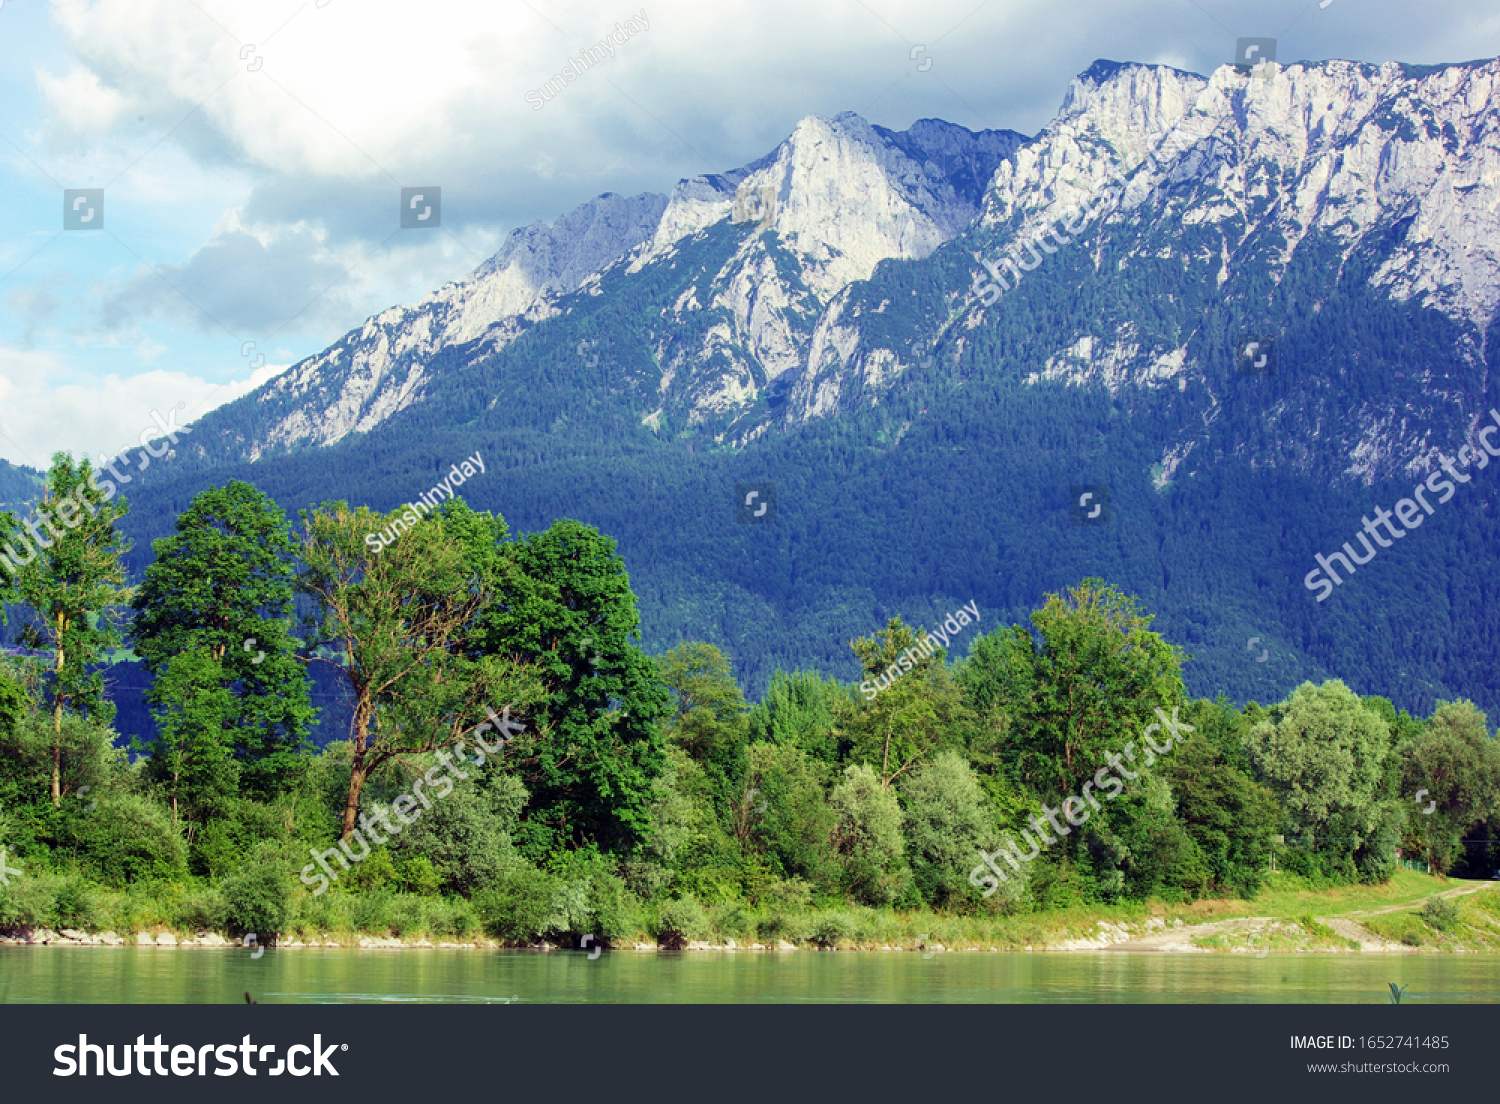 Trees on a river mountain background